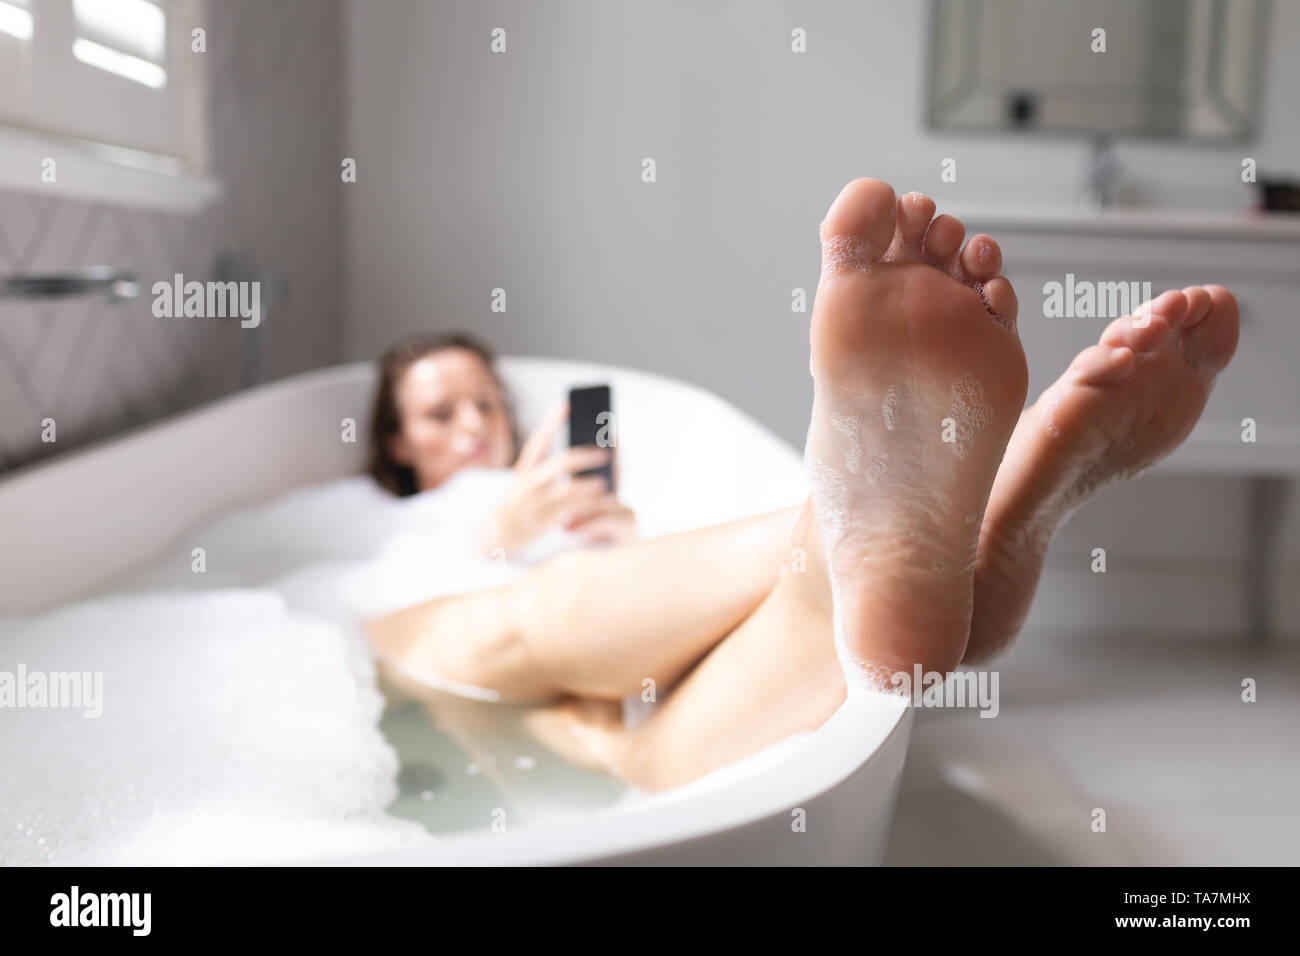 Woman lying in the bathtub with her legs crossed - Stock Image